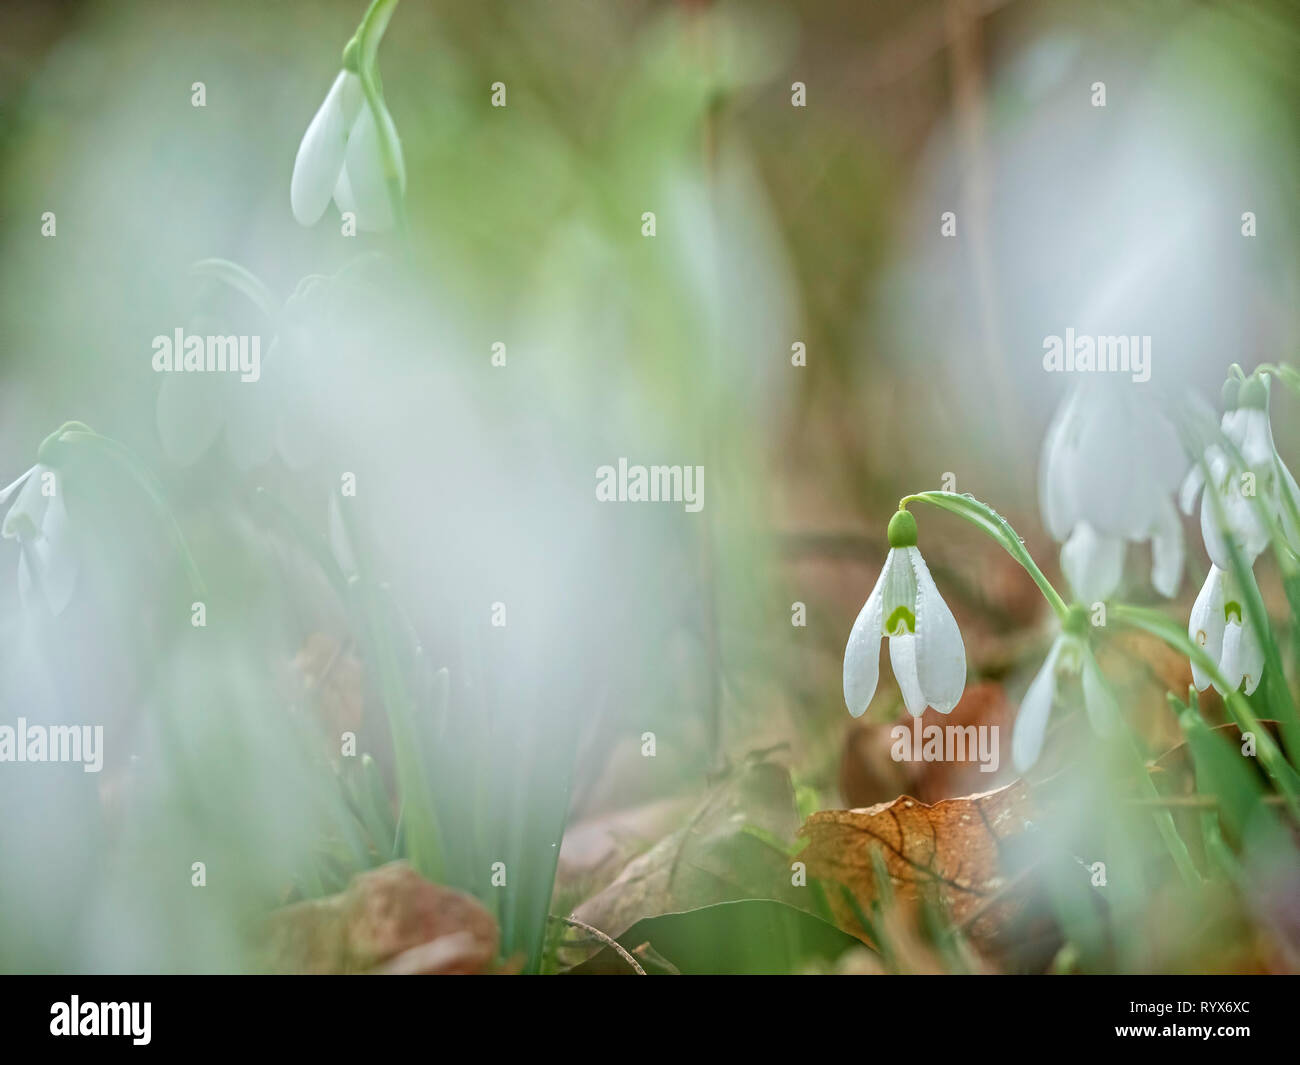 A Snowdrop (Galanthus nivalis) isolated within a bunch of snowdrops. Shot at Garston Wood nature reserve in Dorset. - Stock Image